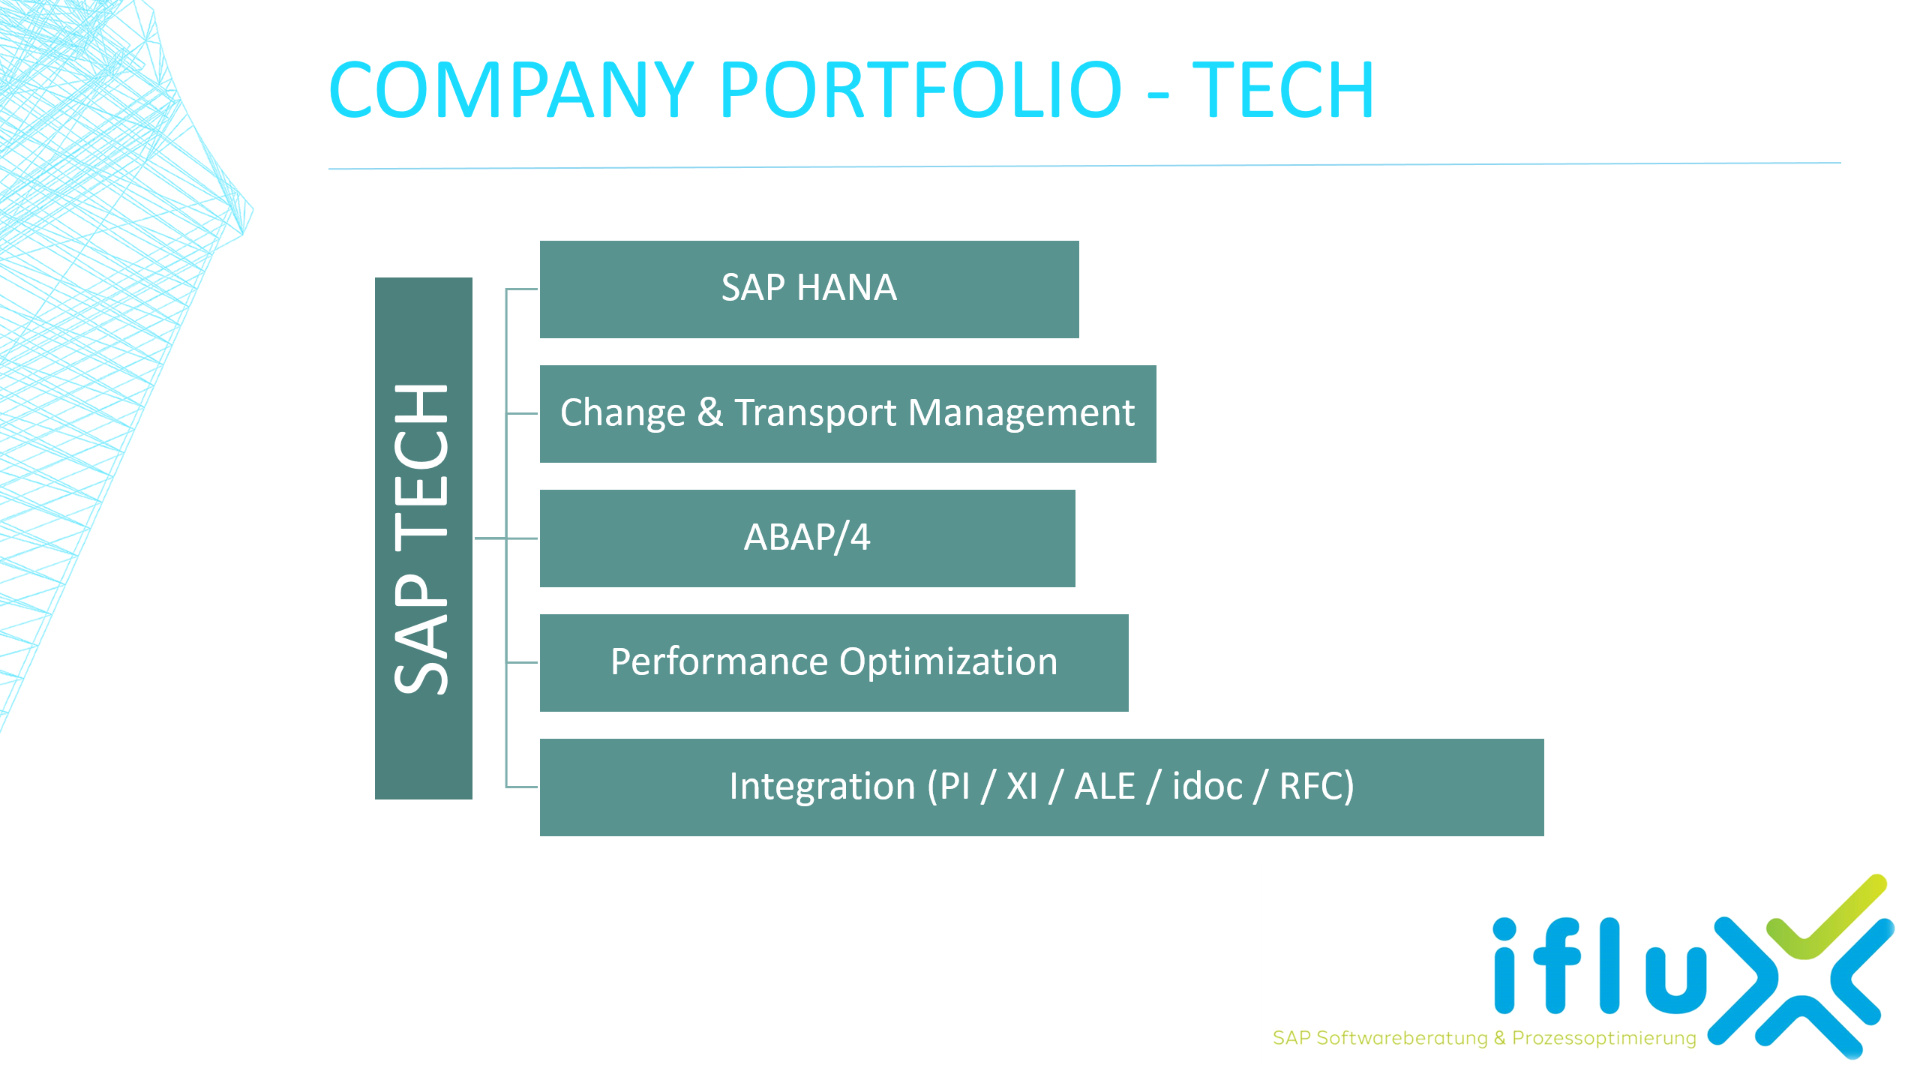 Portfolio - IT & SAP Technology